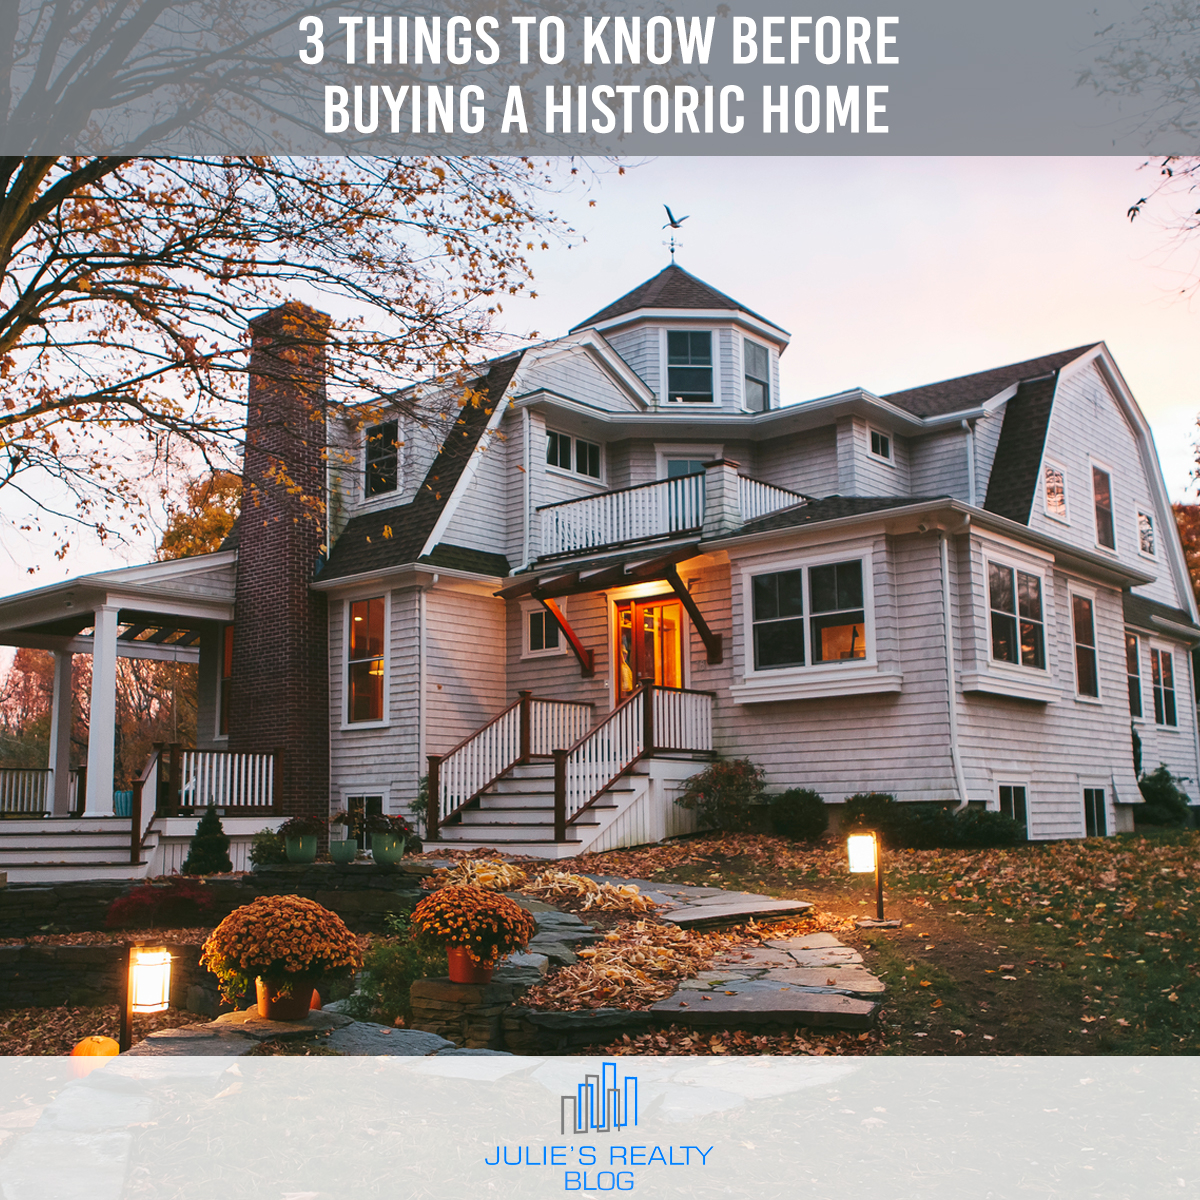 3 things to know before buying a historic home square.jpg